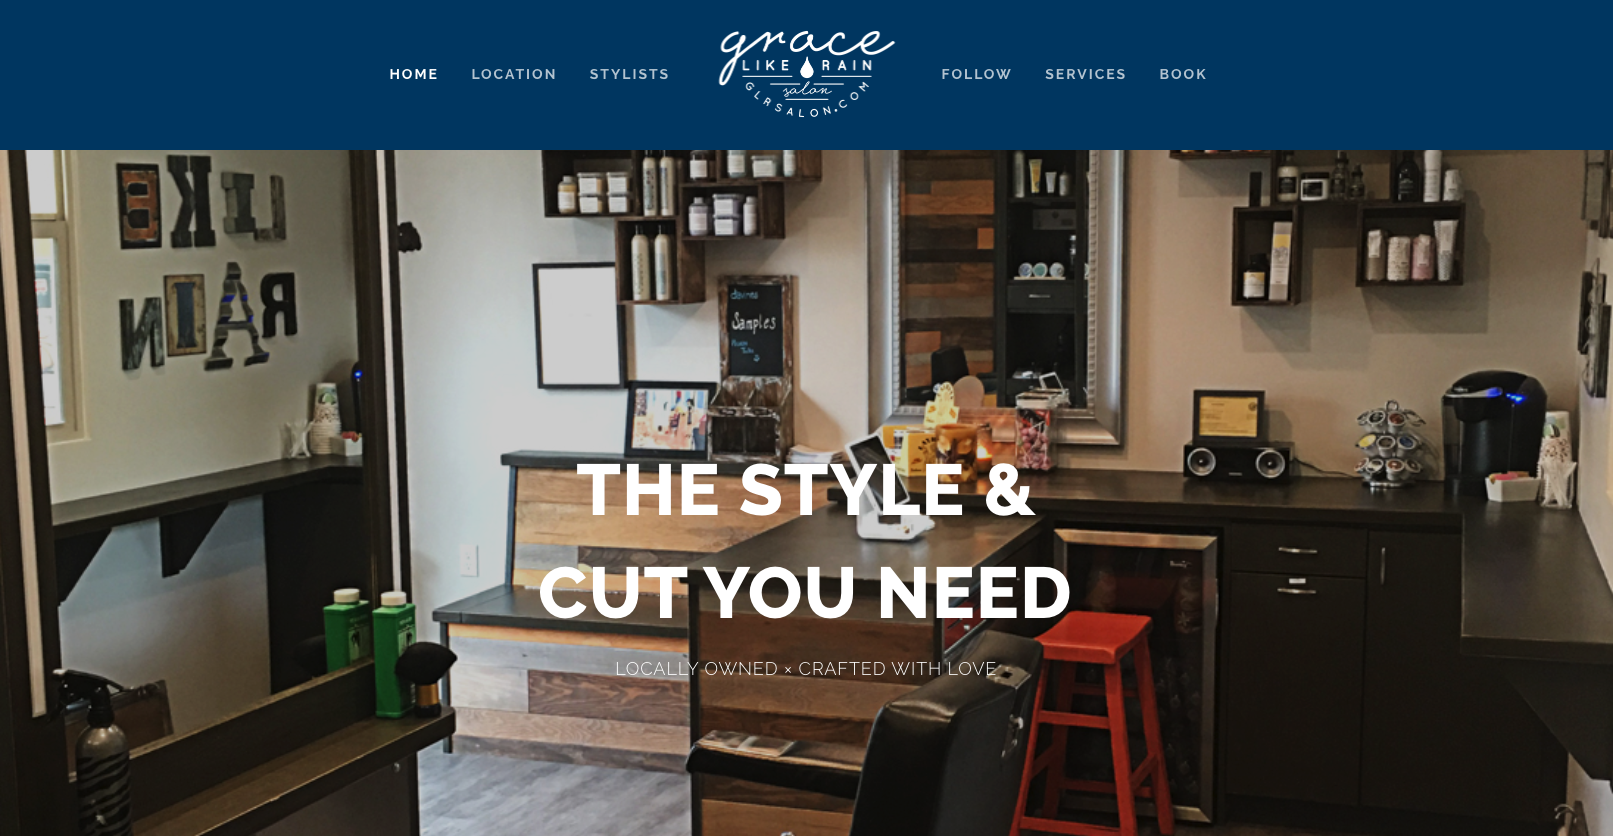 Grace Like Rain Salon  uses the all-on-one page approach to their website.